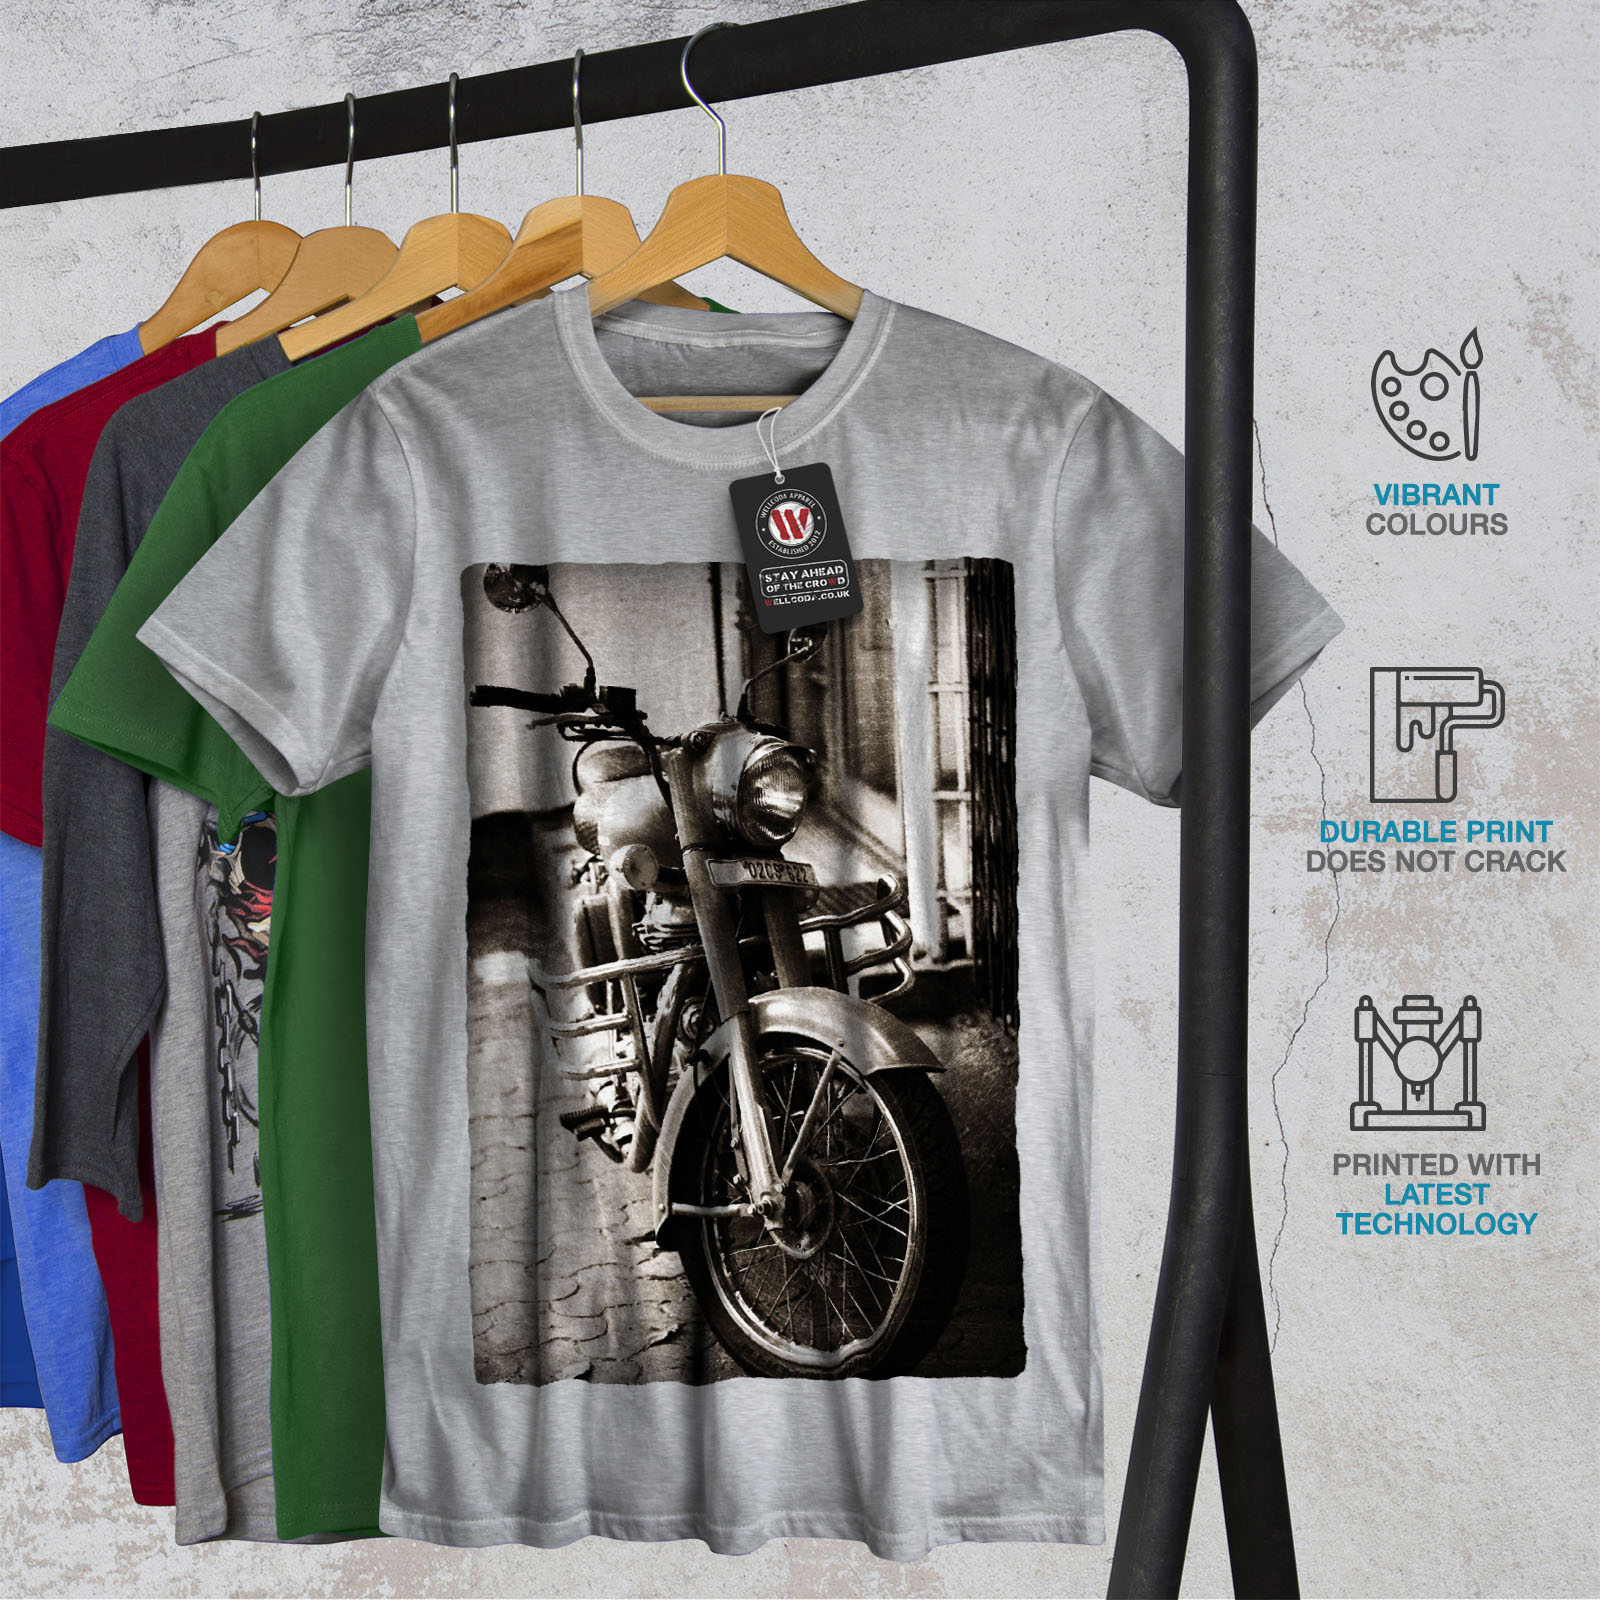 Wellcoda-Old-Retro-Mens-T-shirt-Motorcycle-Graphic-Design-Printed-Tee thumbnail 18